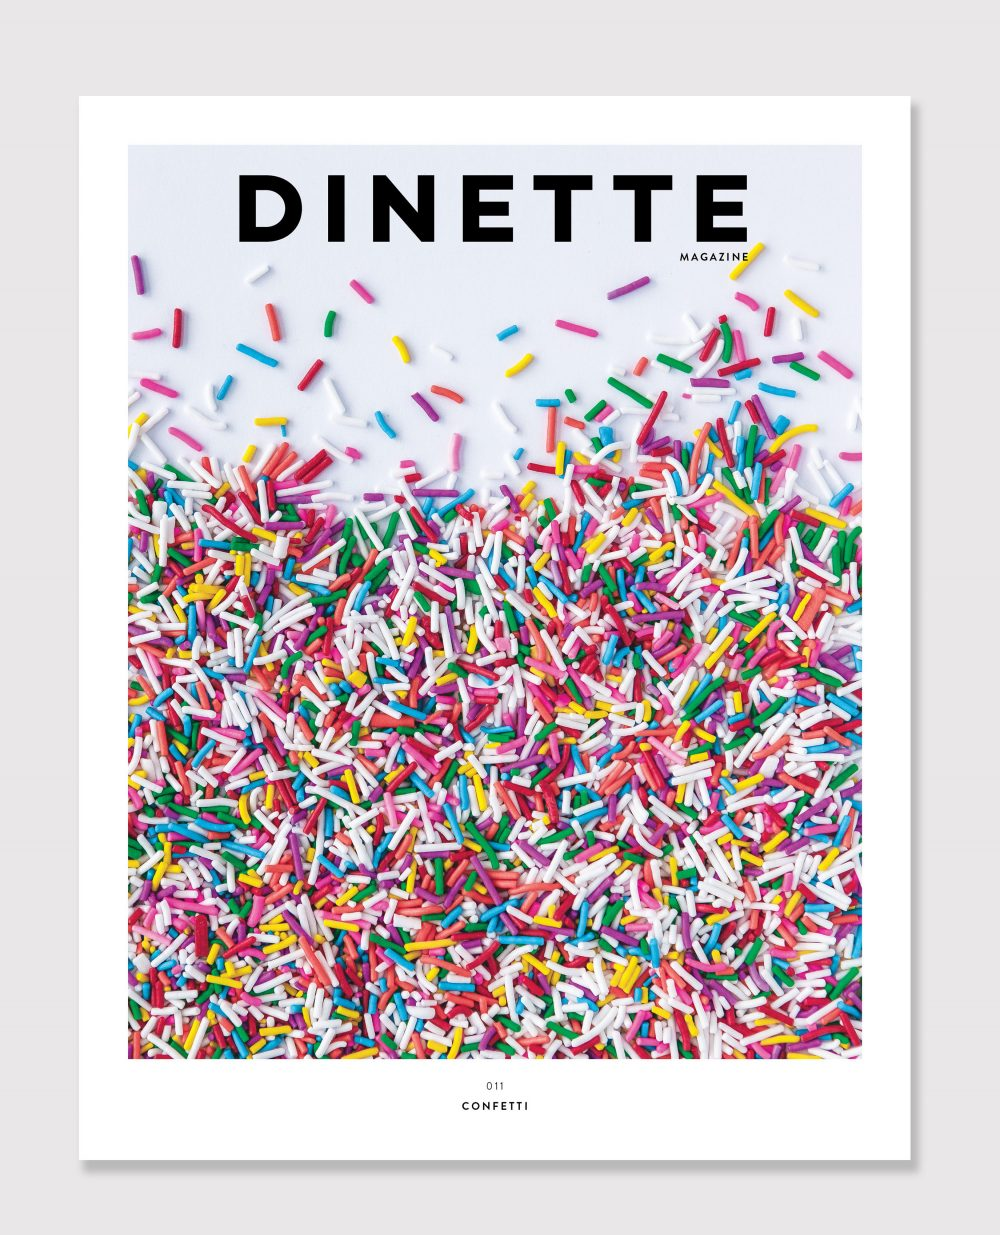 jeffontheroad-gift-ideas-foodie-abonnement-dinette-magazine